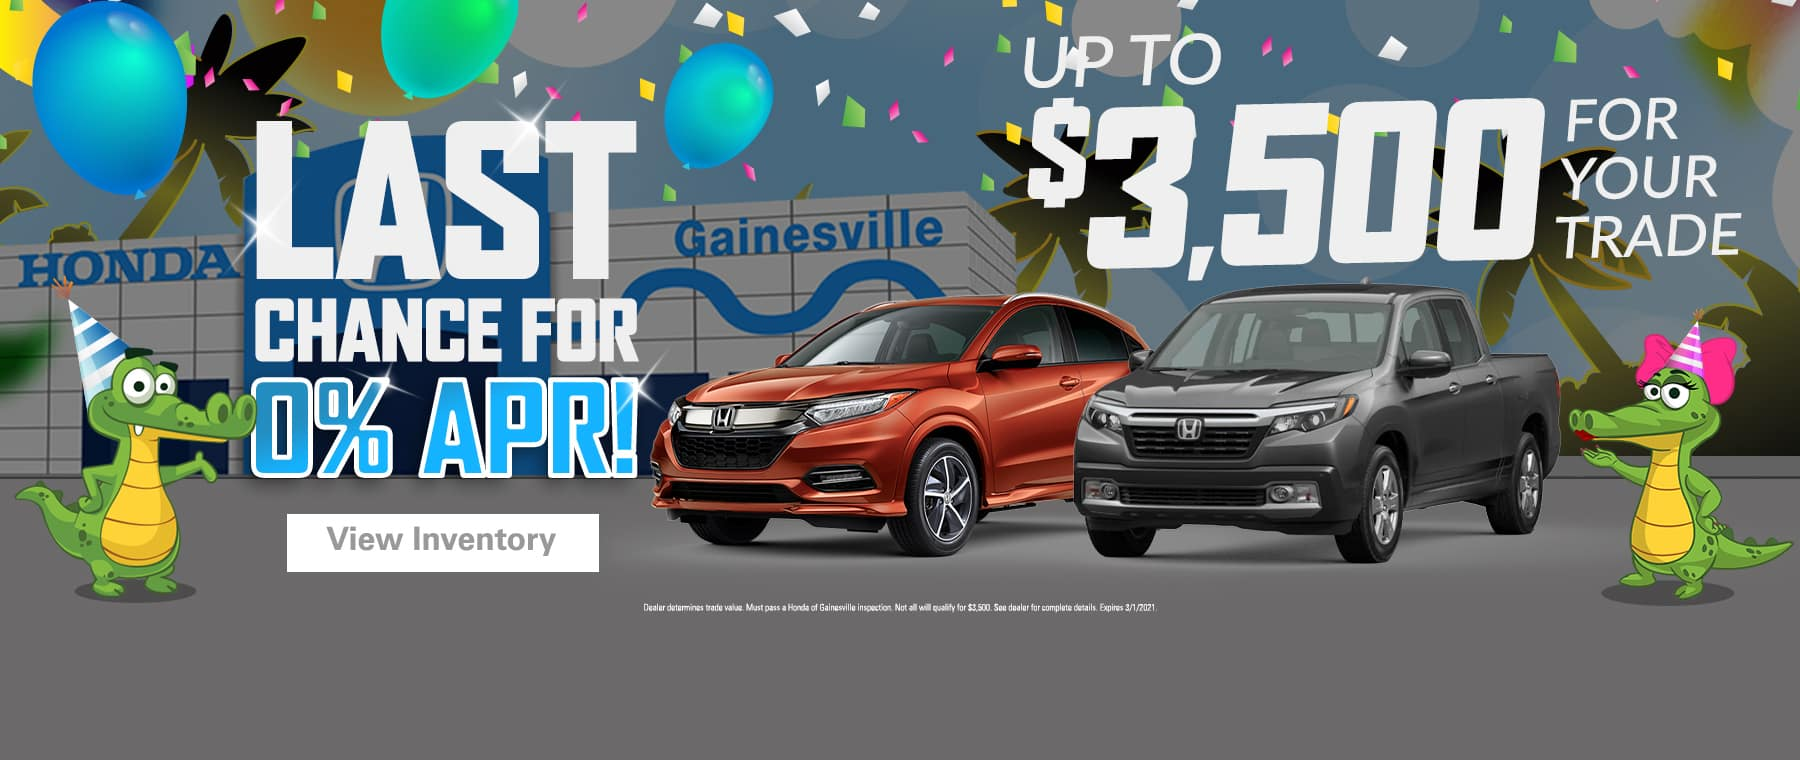 Last Chance For 0% APR! Up To $3,500 For Your Trade